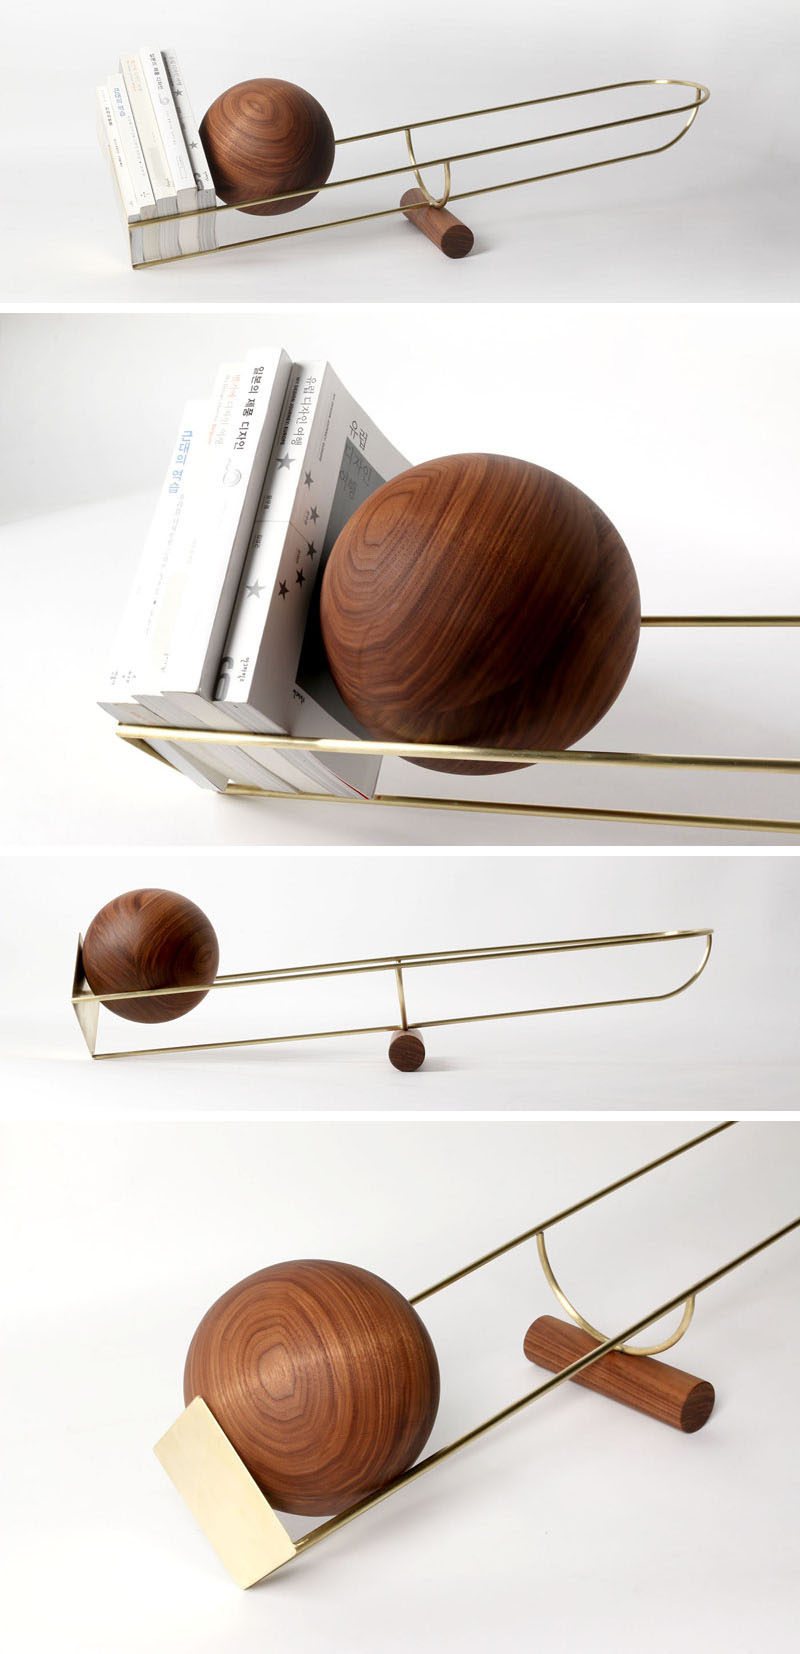 This simple and unique bookshelf is designed like a see-saw, with a wooden ball that rolls depending on where the weight on the shelf is.